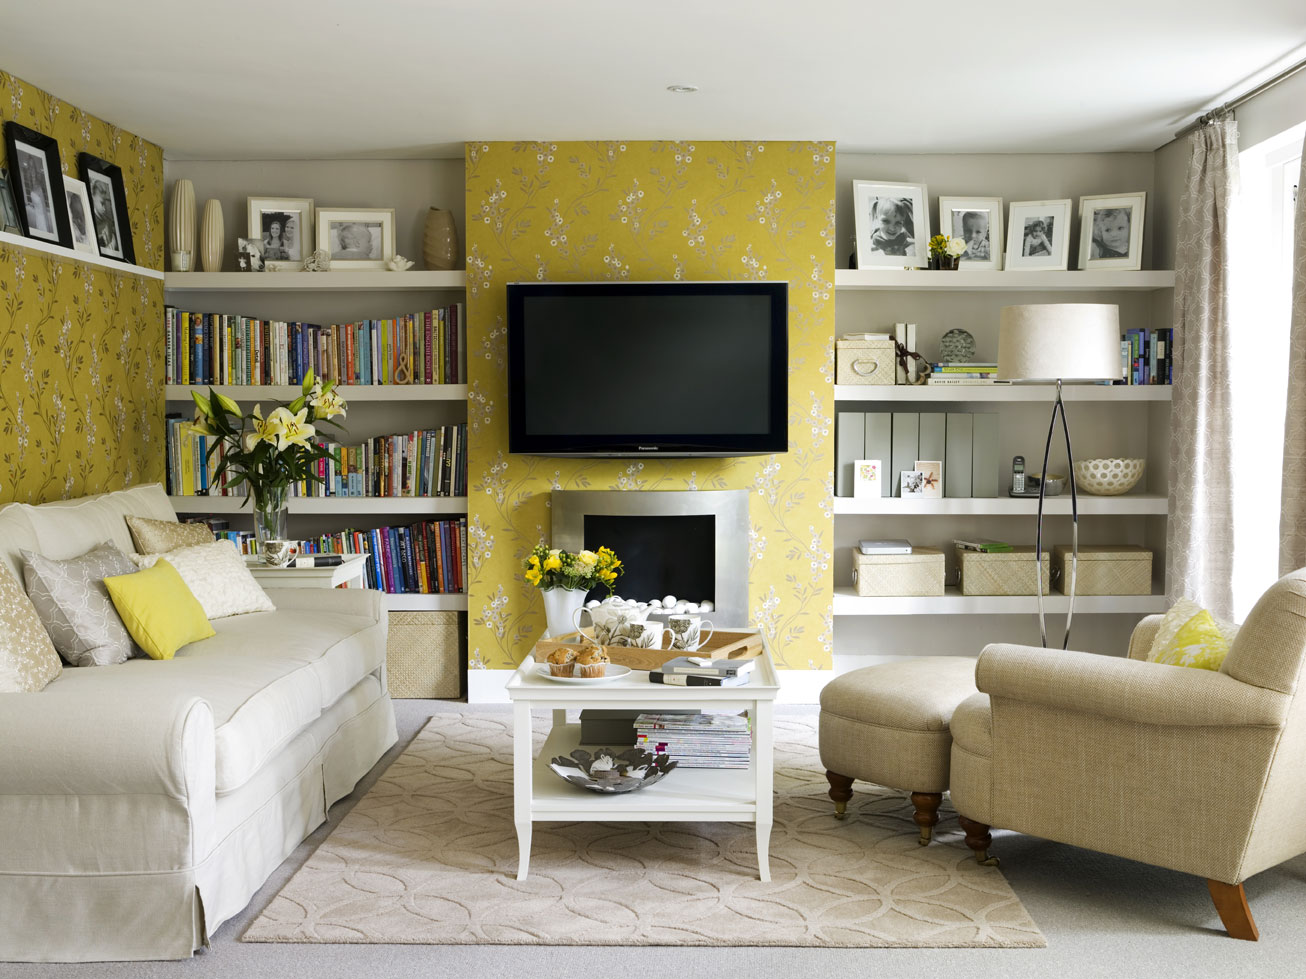 Yellow room interior inspiration 55 rooms for your for 55 small living room ideas